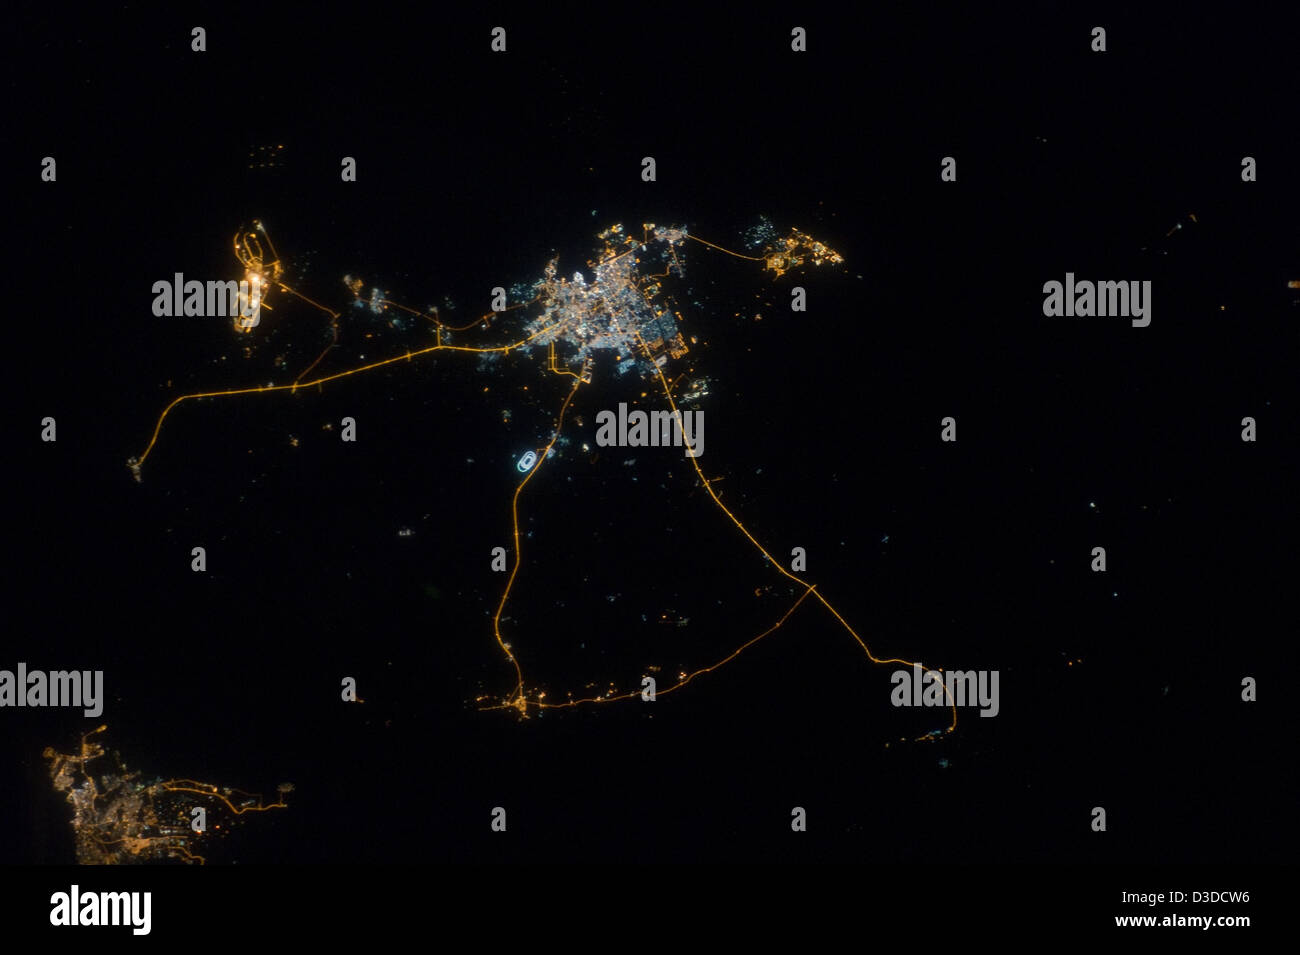 Qatar at Night (NASA, International Space Station, 10/13/12) - Stock Image